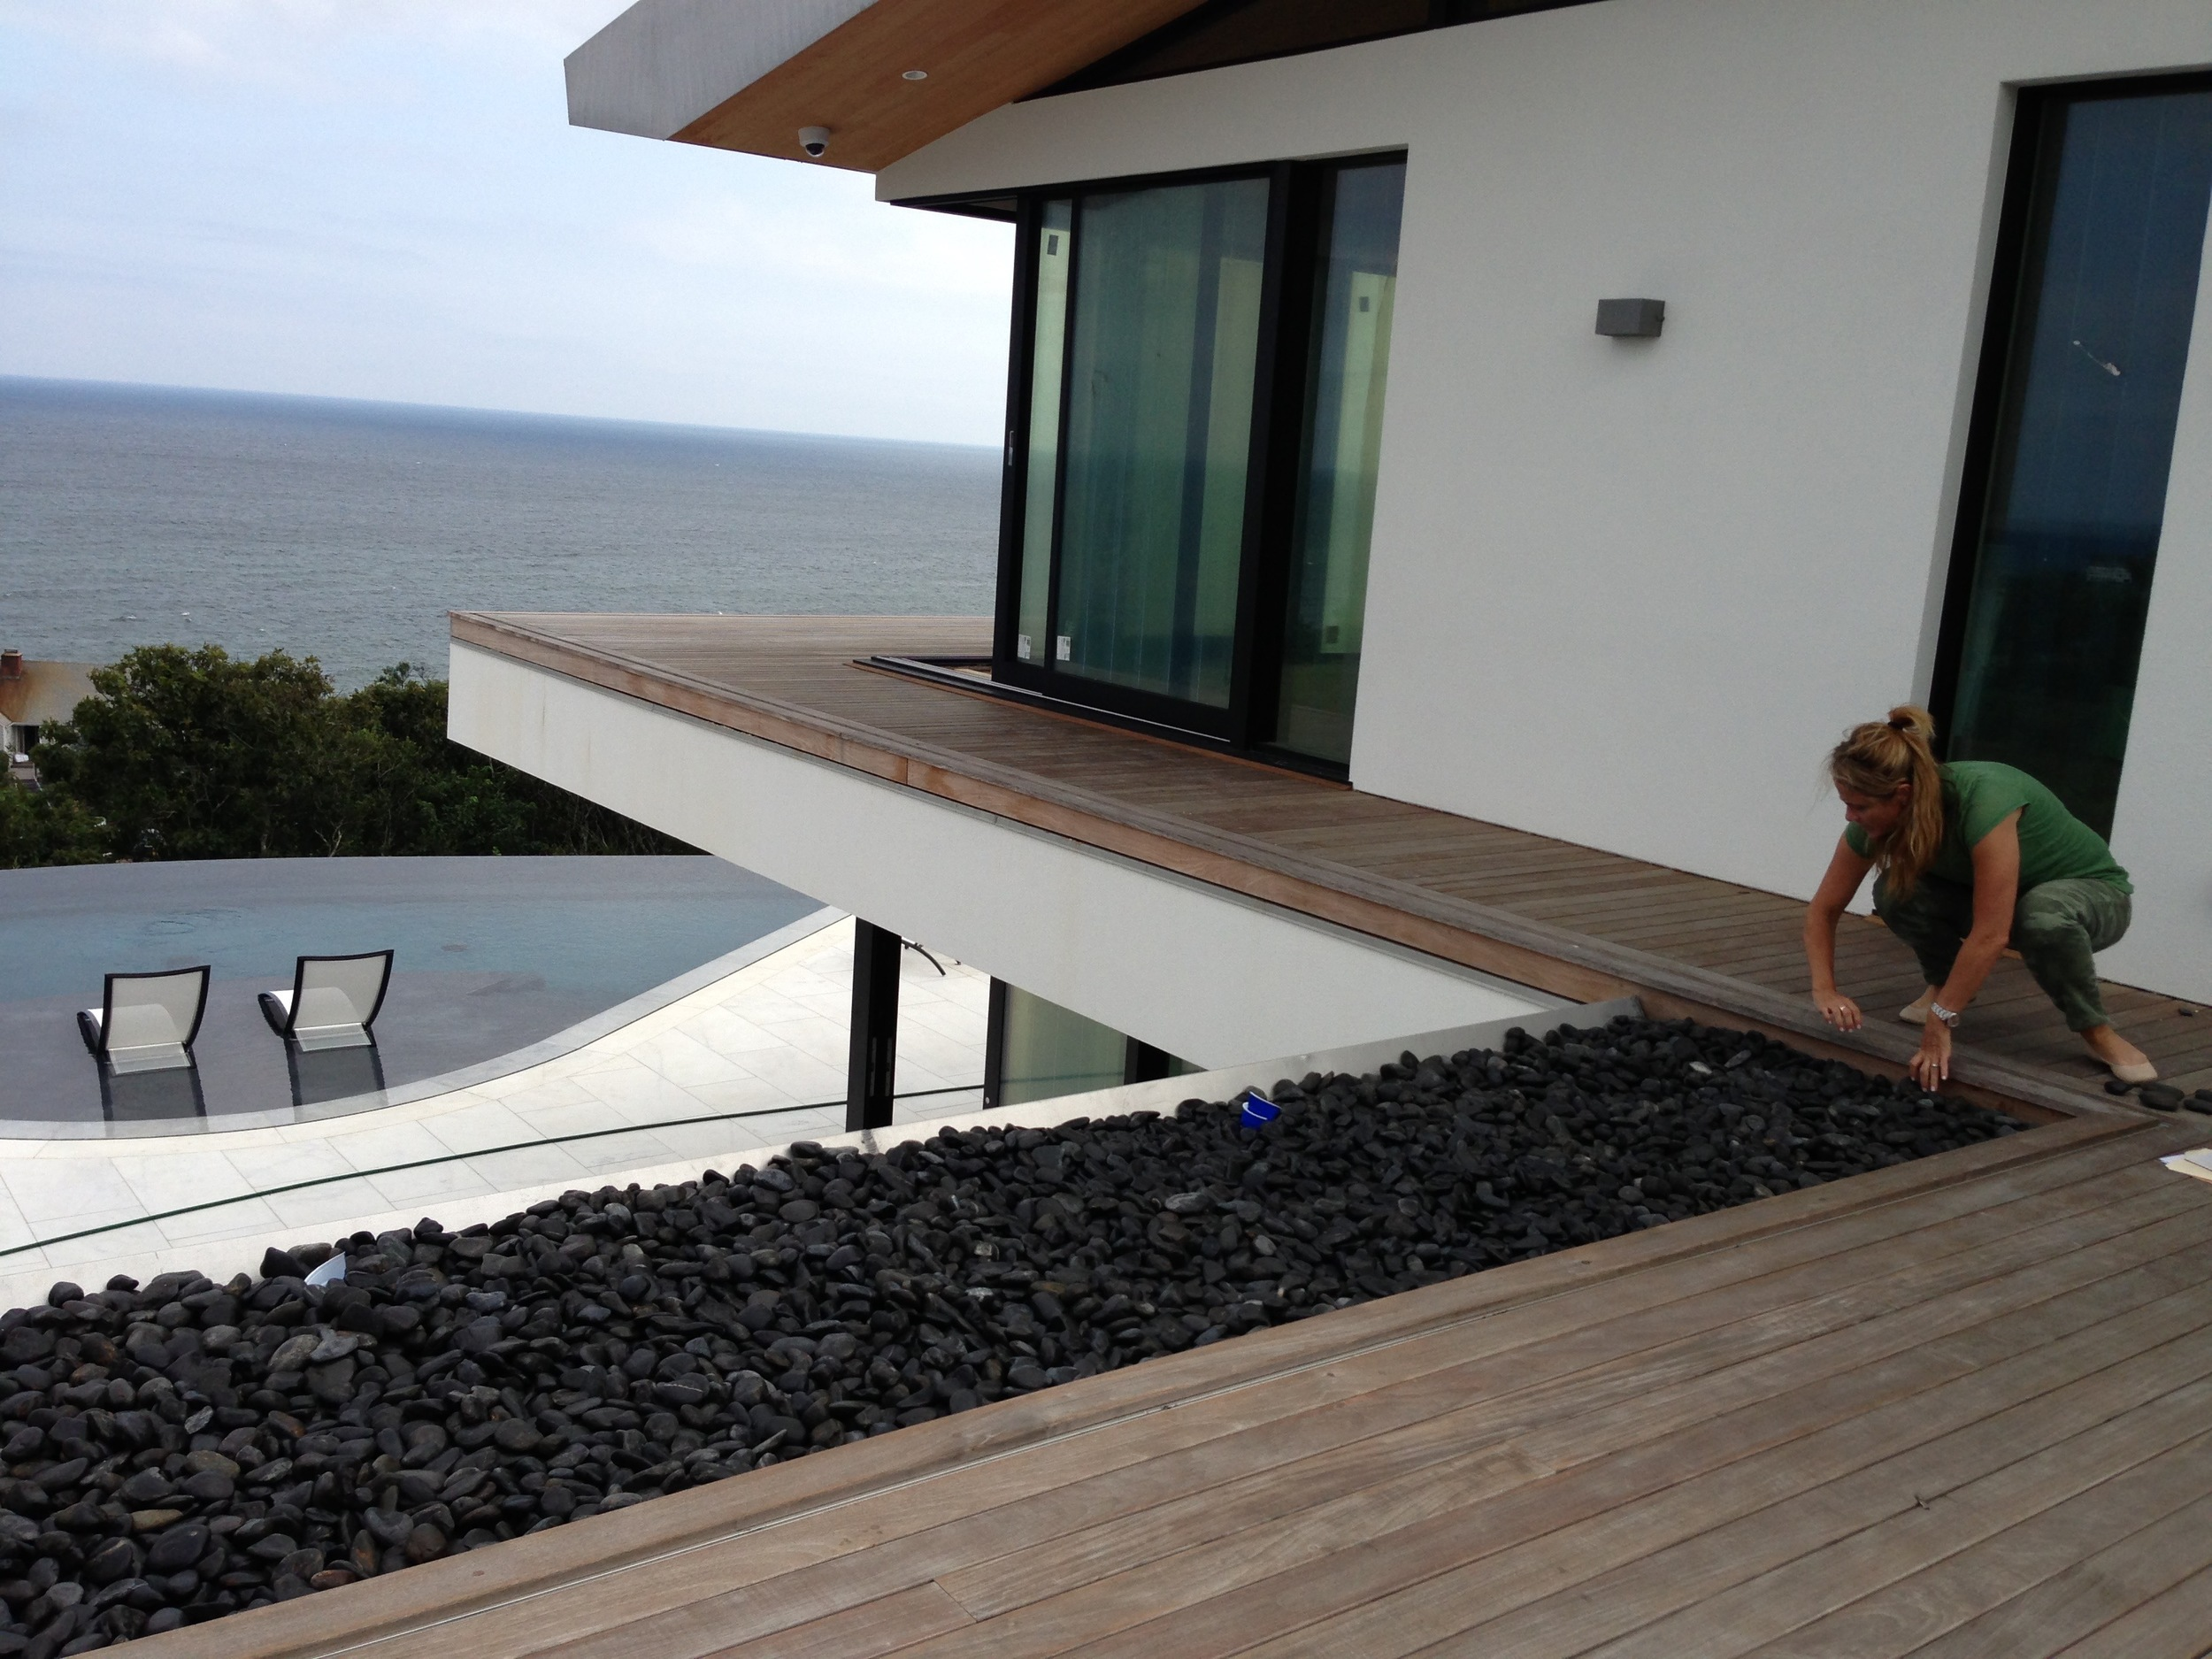 Steph selecting a river rock from the Roof Deck to be used as a model for the Living Room coffee table.